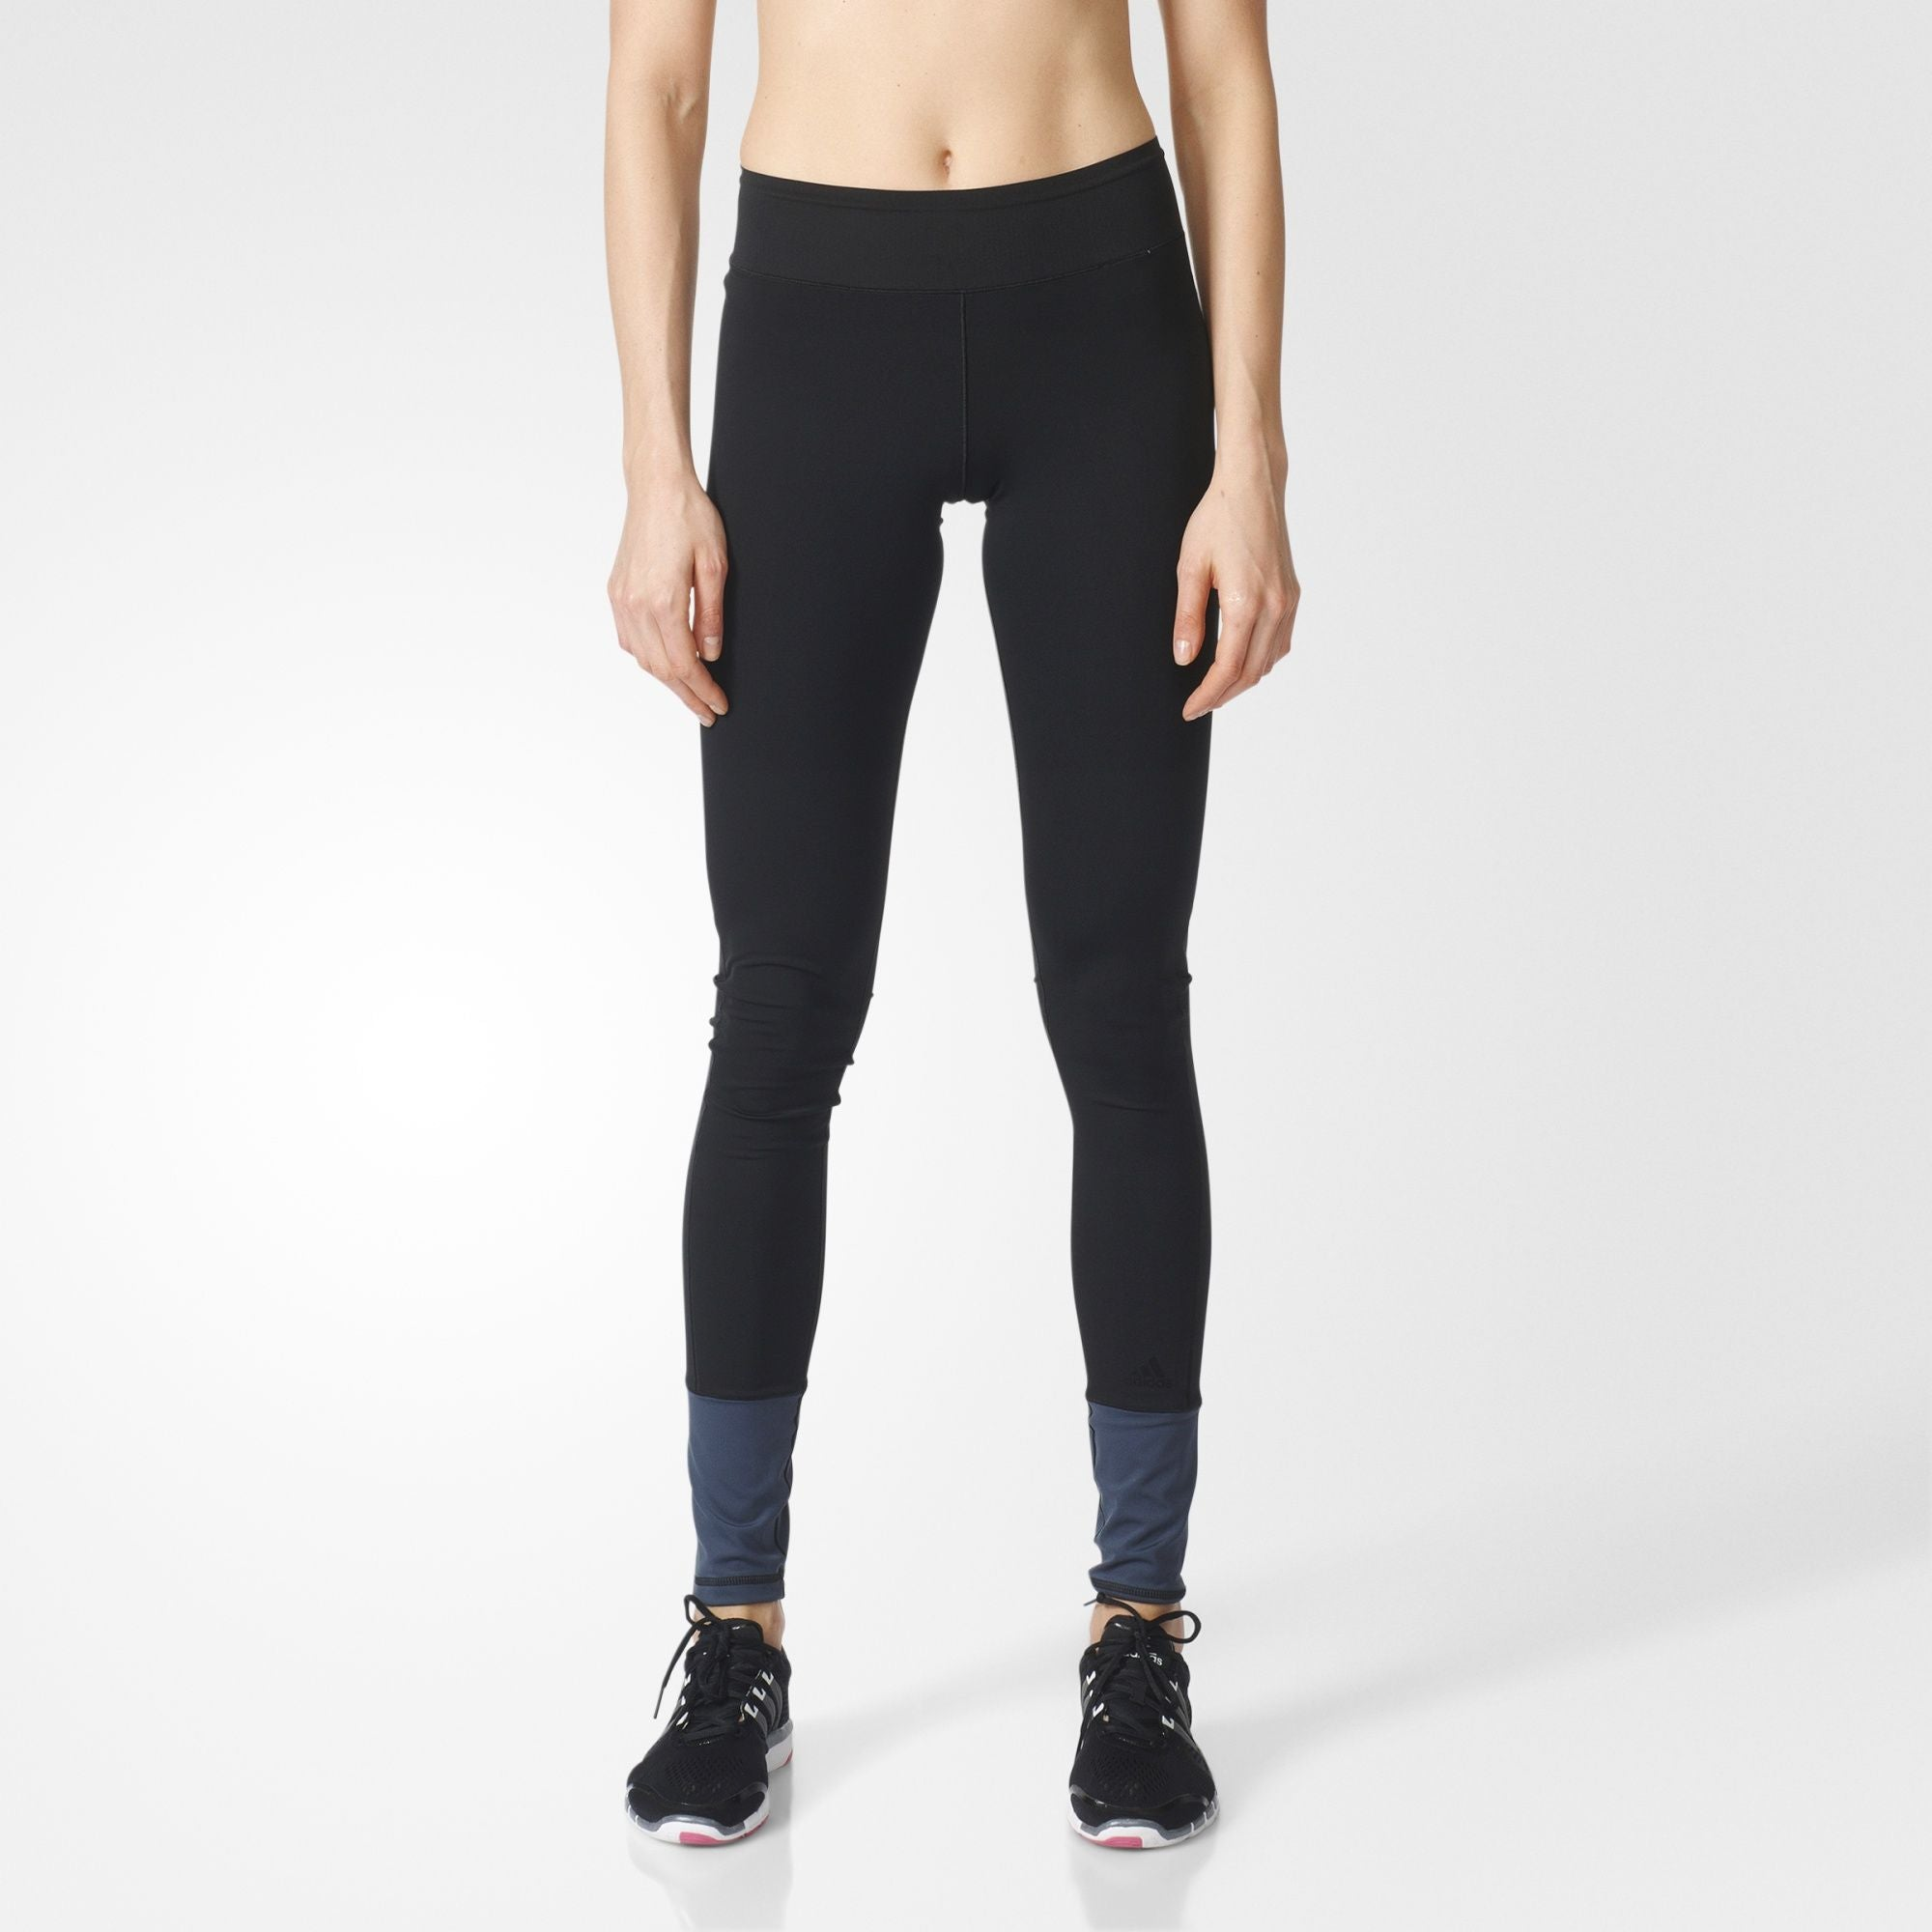 Adidas Ultimate Fit Tights AY6159